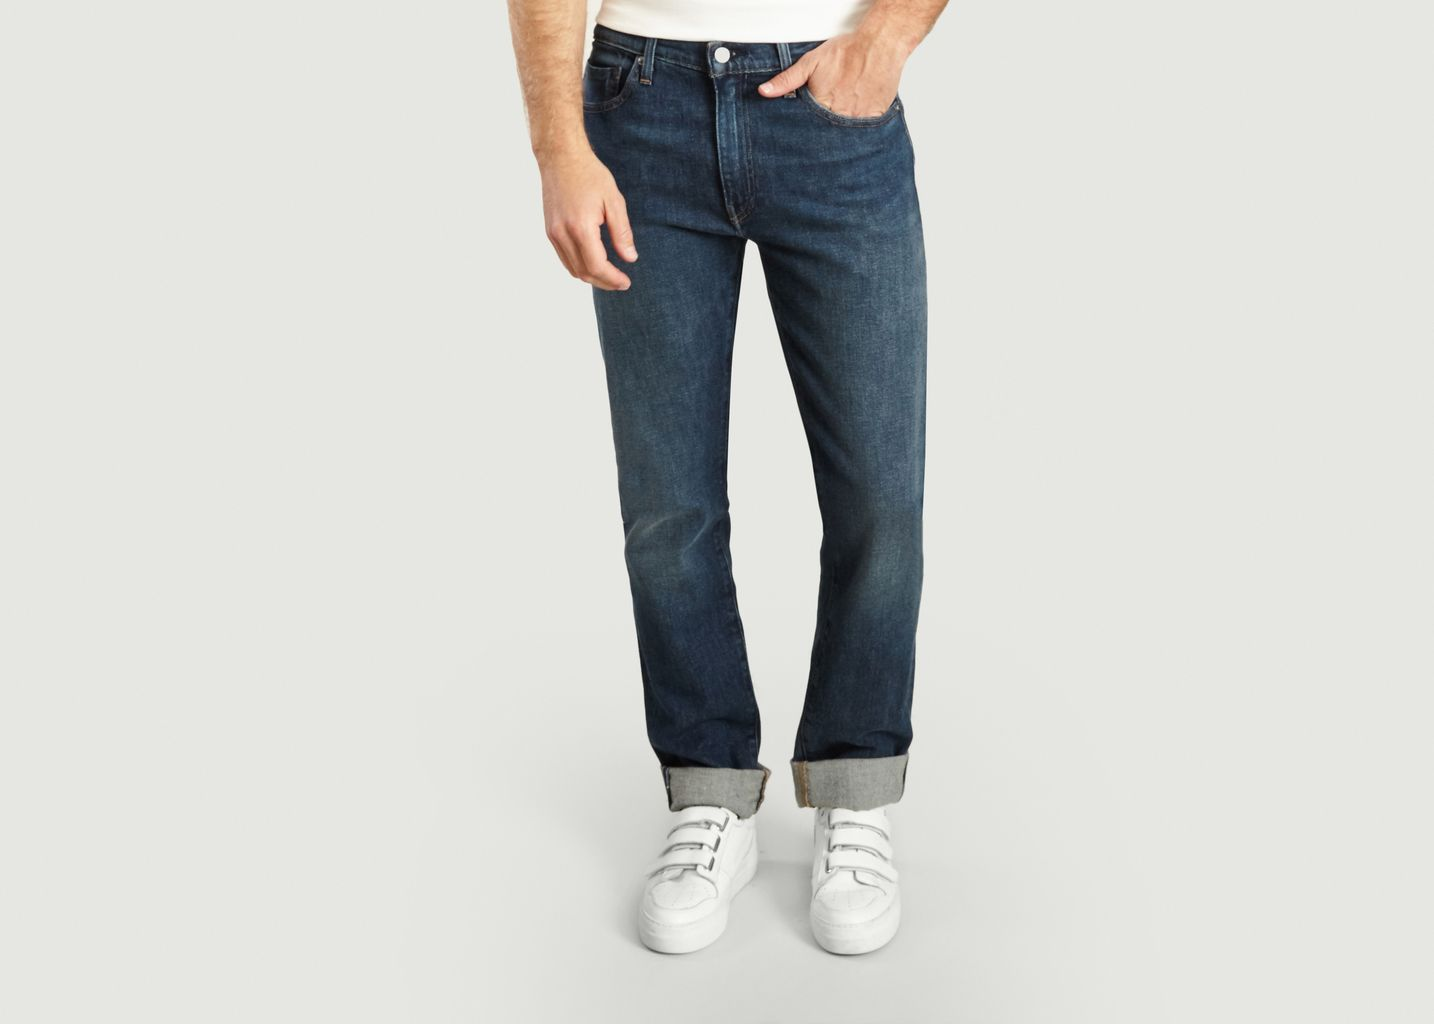 Jean 511 Selvedge Refibra - Levi's Made and Crafted